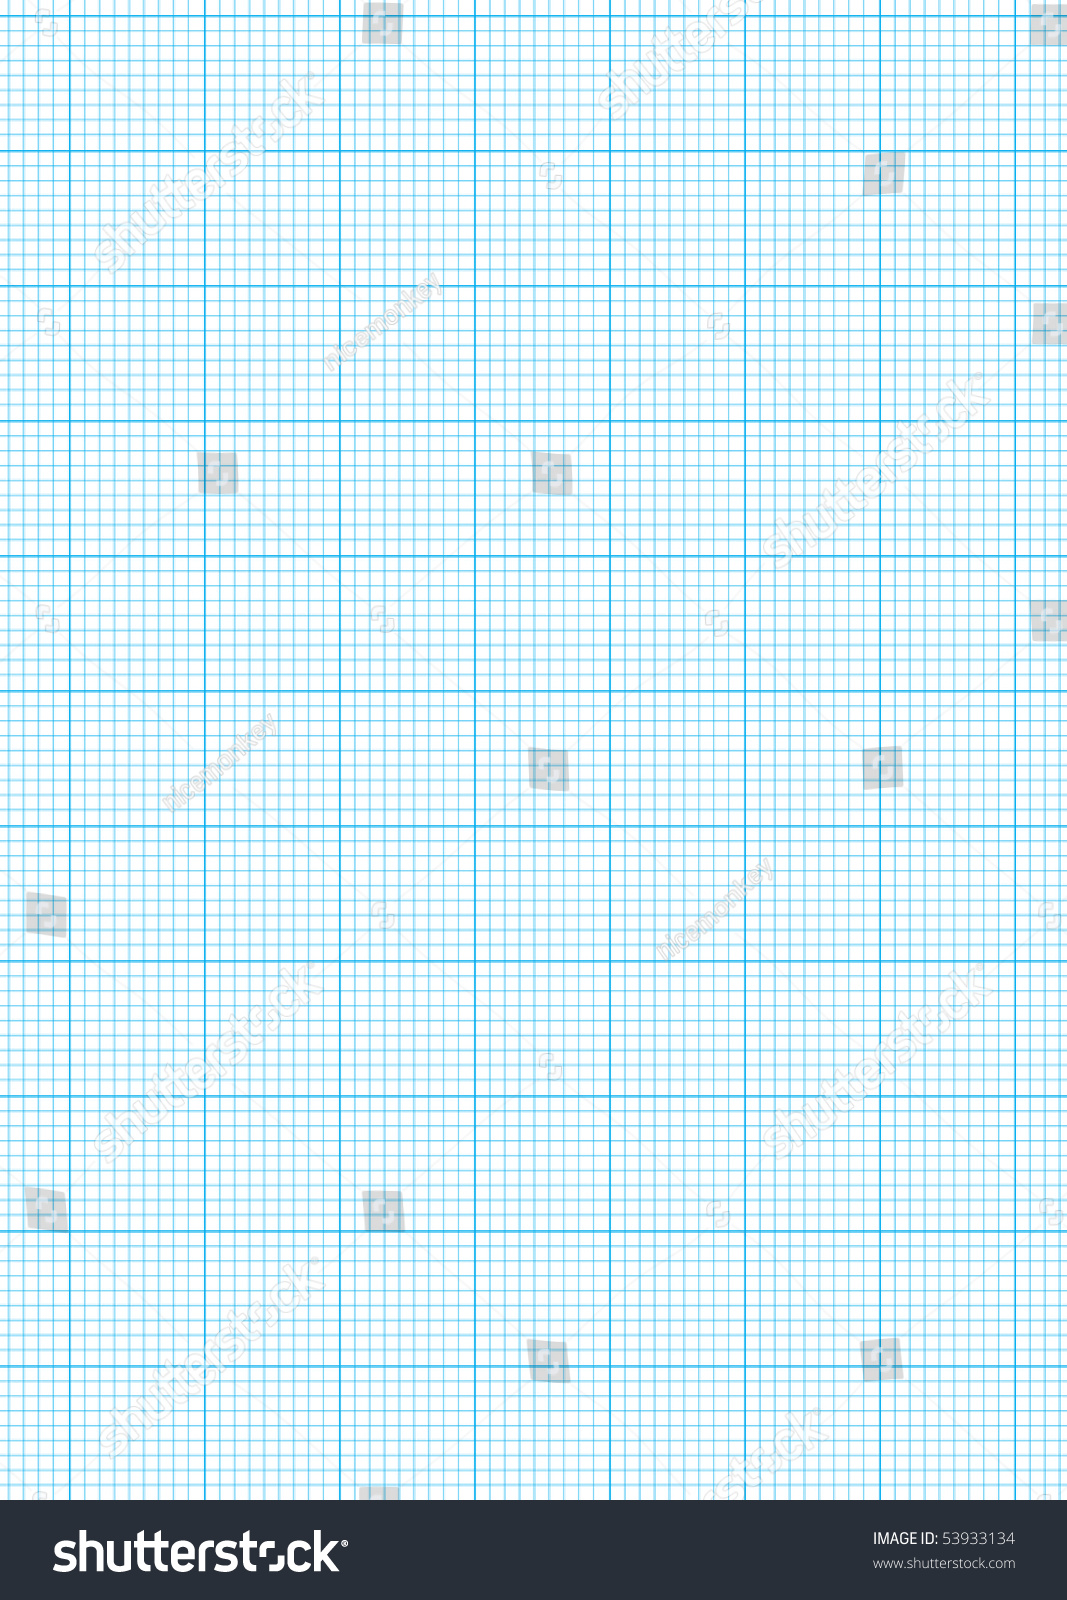 Math Concept With Sheet Of Blue Graph Paper Background